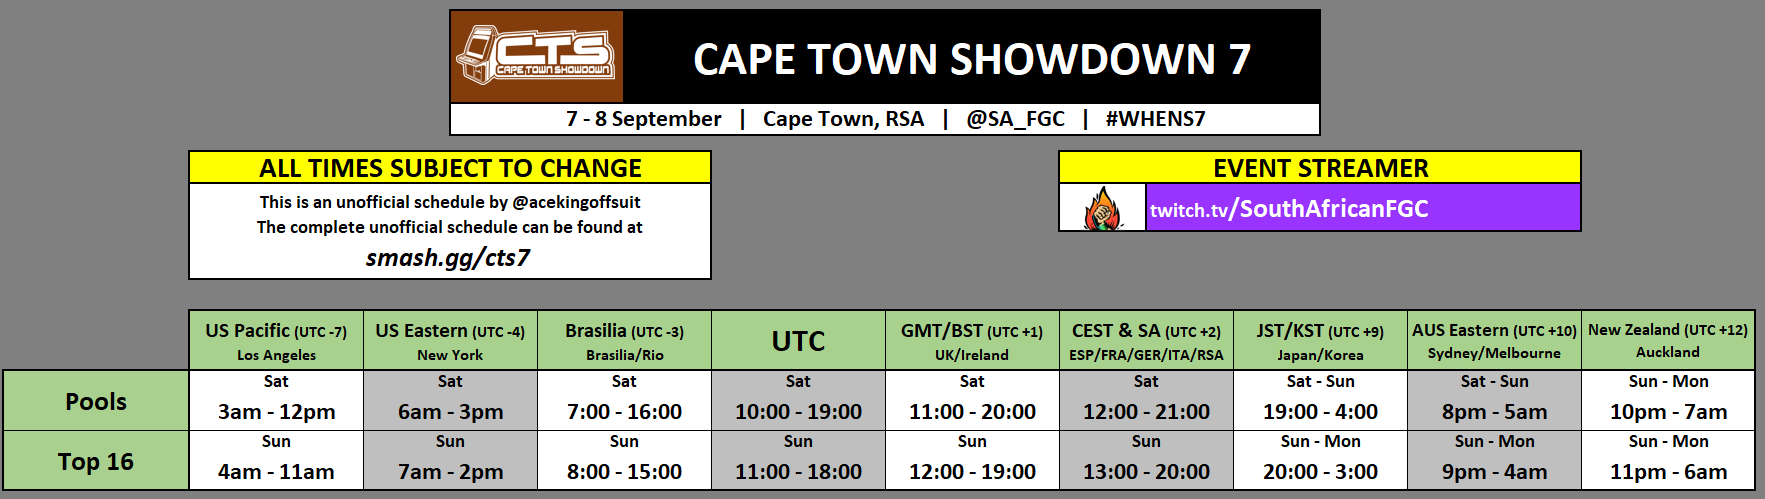 Cape Town Showdown 7 Event Schedule 1 out of 1 image gallery